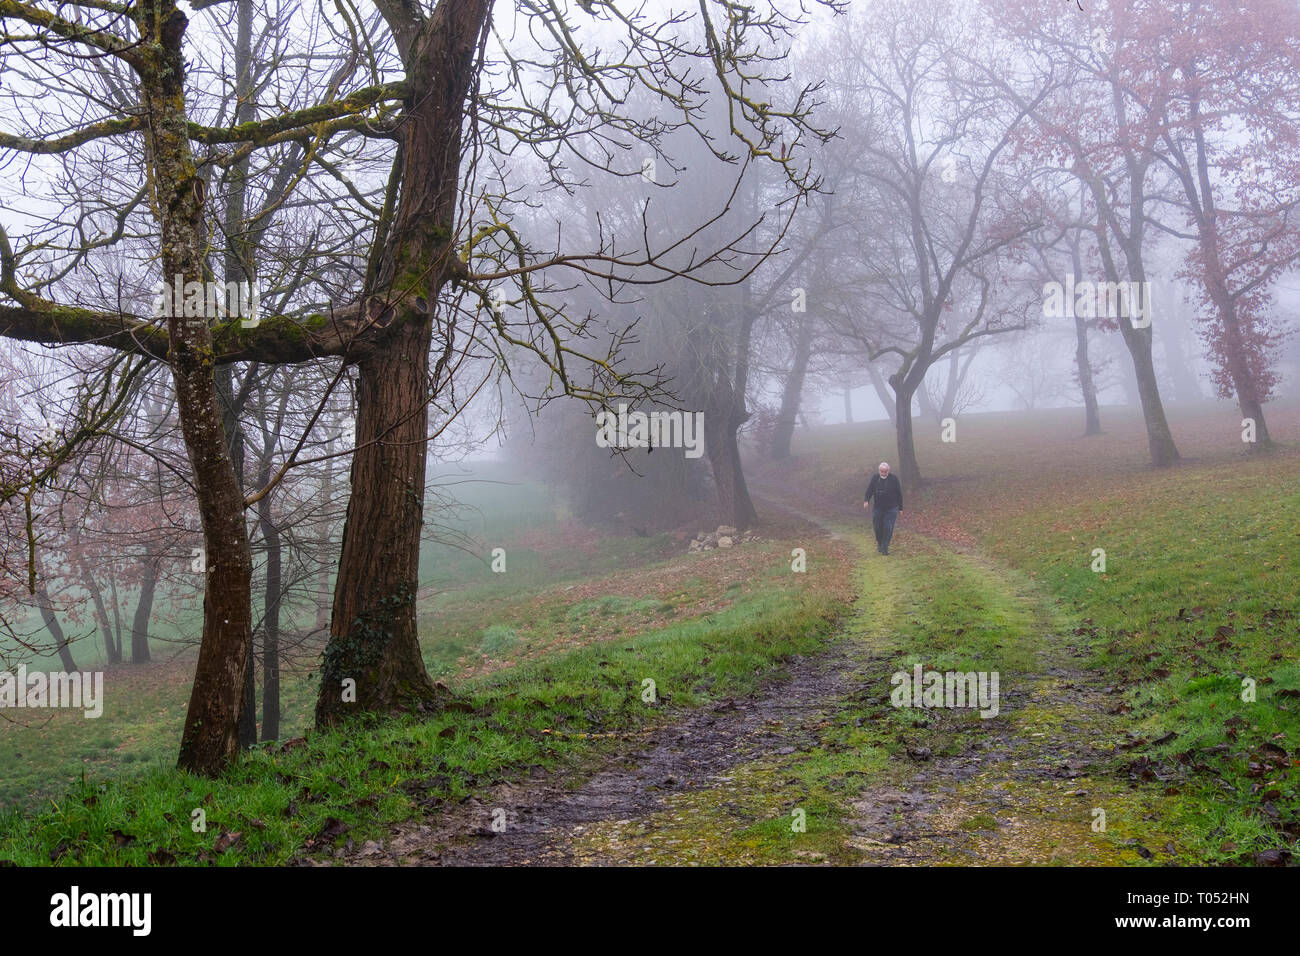 Man walking in the fog. Winter morning at rural house. Gers, Midi-Pyrenees, France. Europe - Stock Image